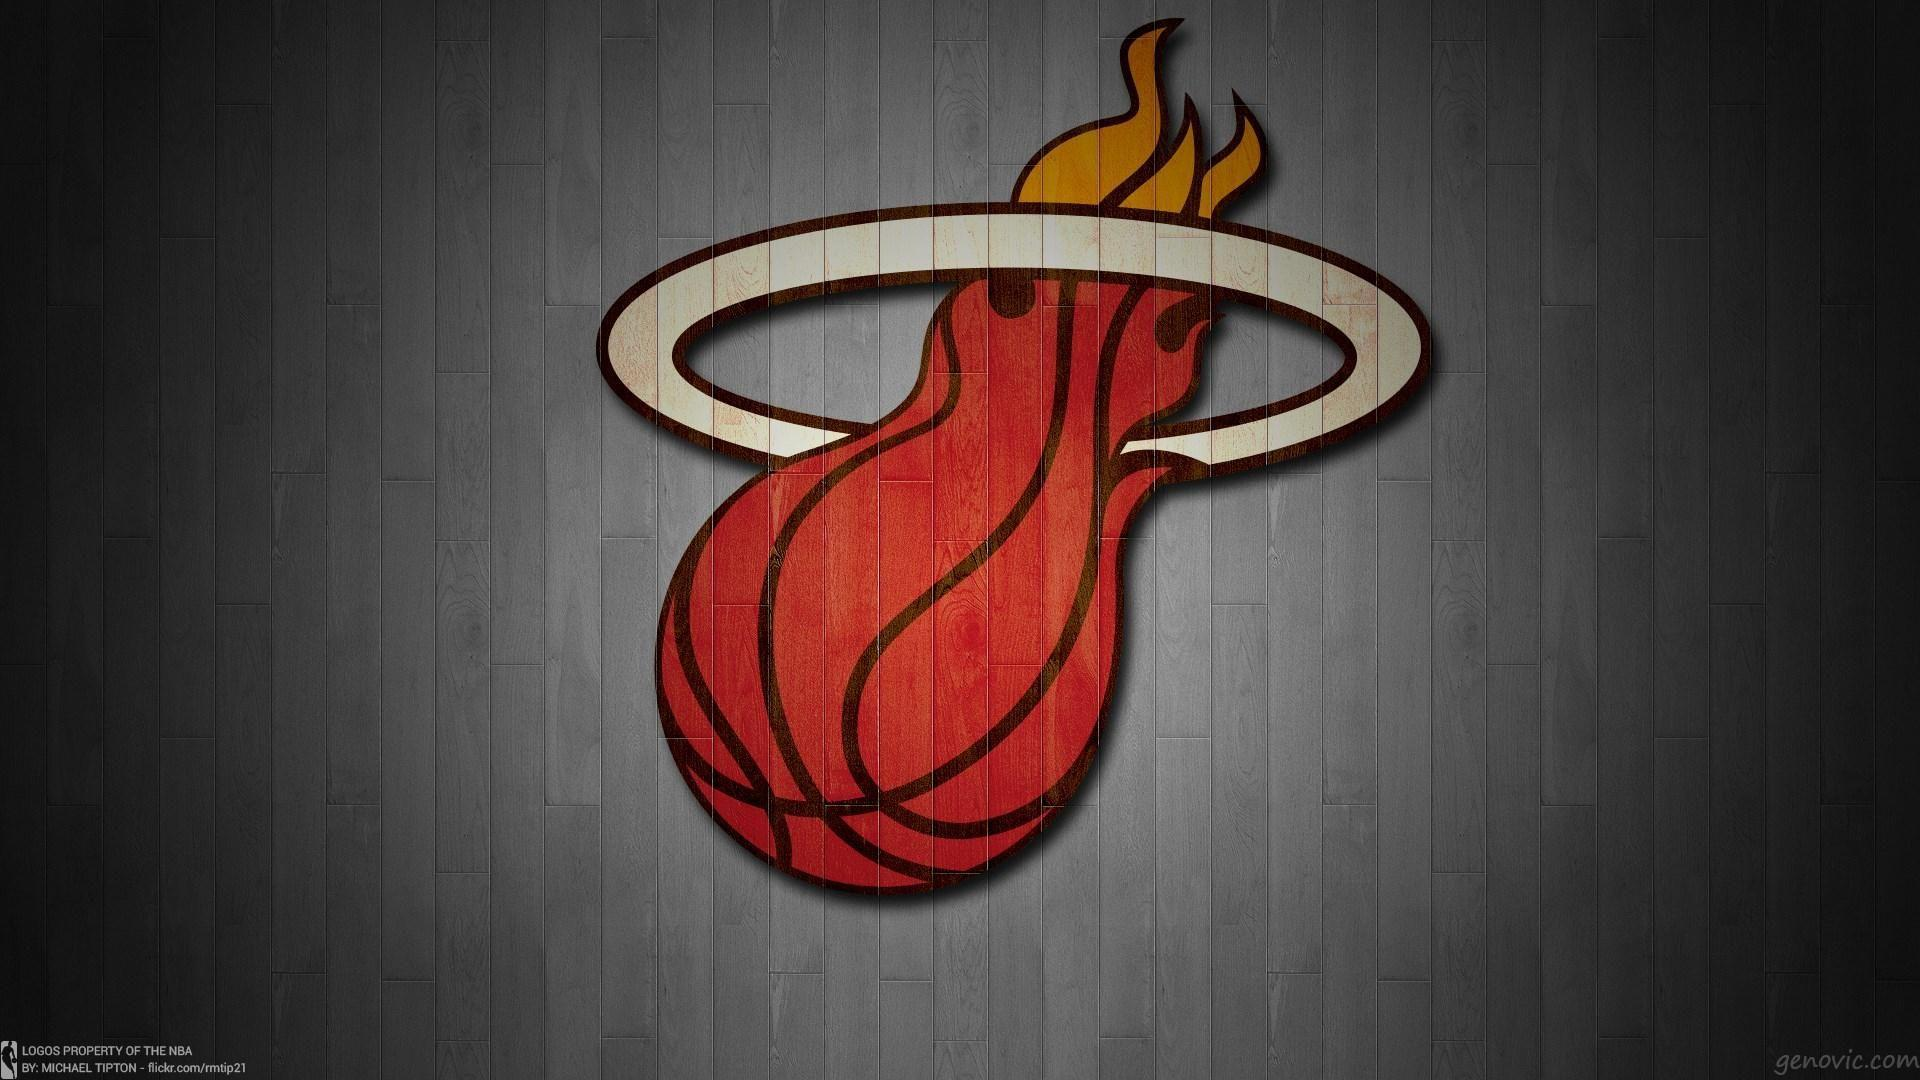 Miami heat 2016 wallpapers wallpaper cave - Miami heat wallpaper android download ...